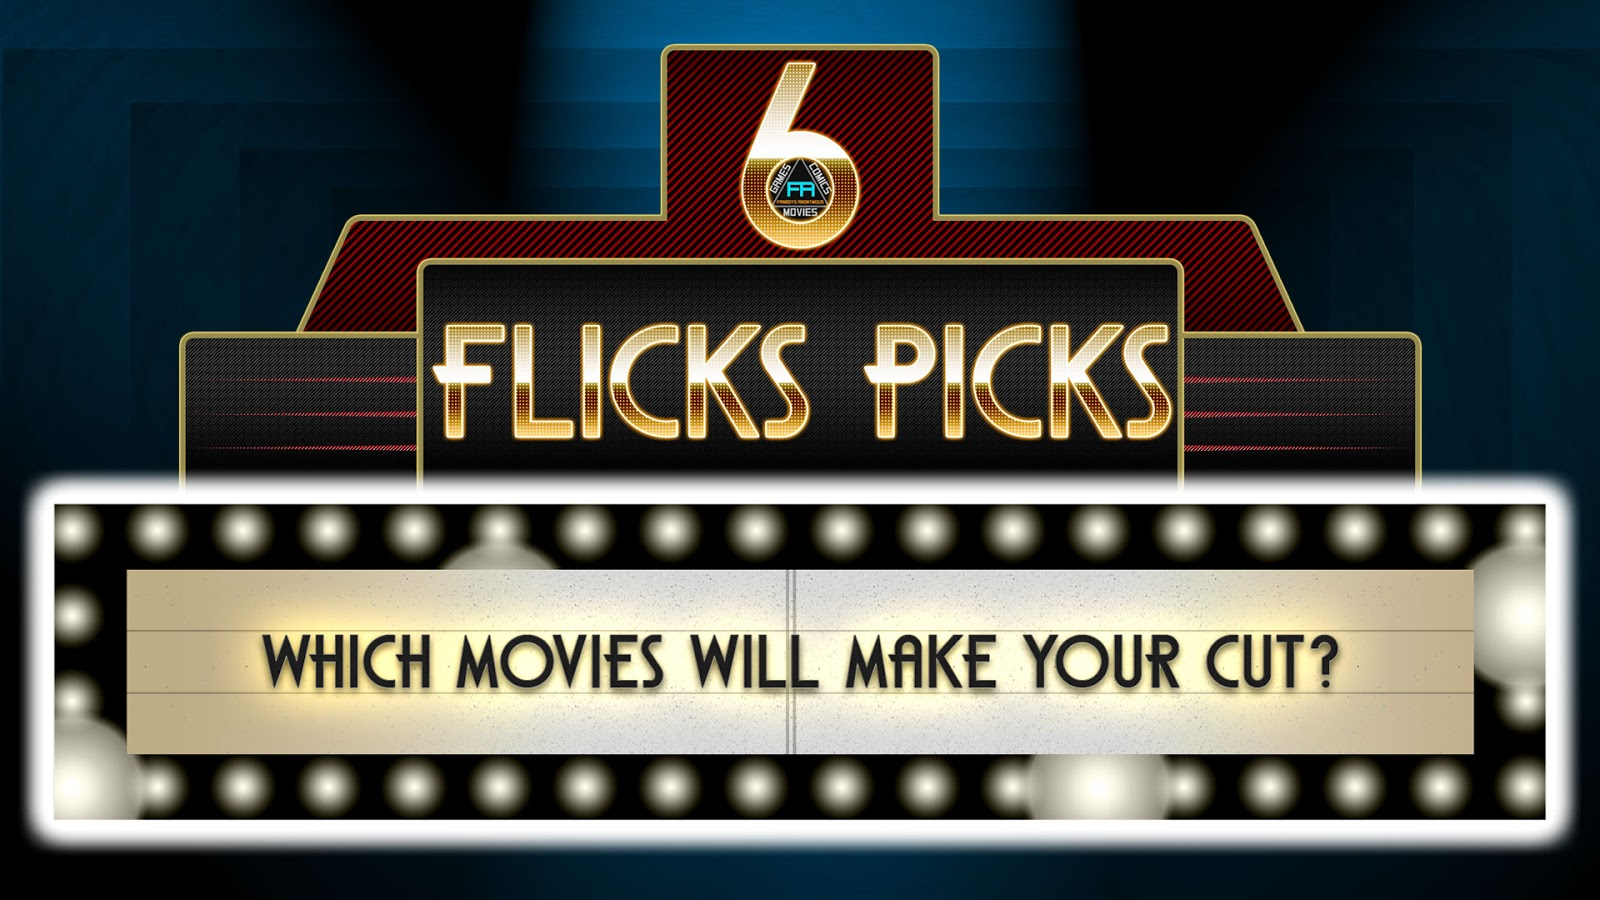 What movies are coming out November 2015 6 Flicks Picks